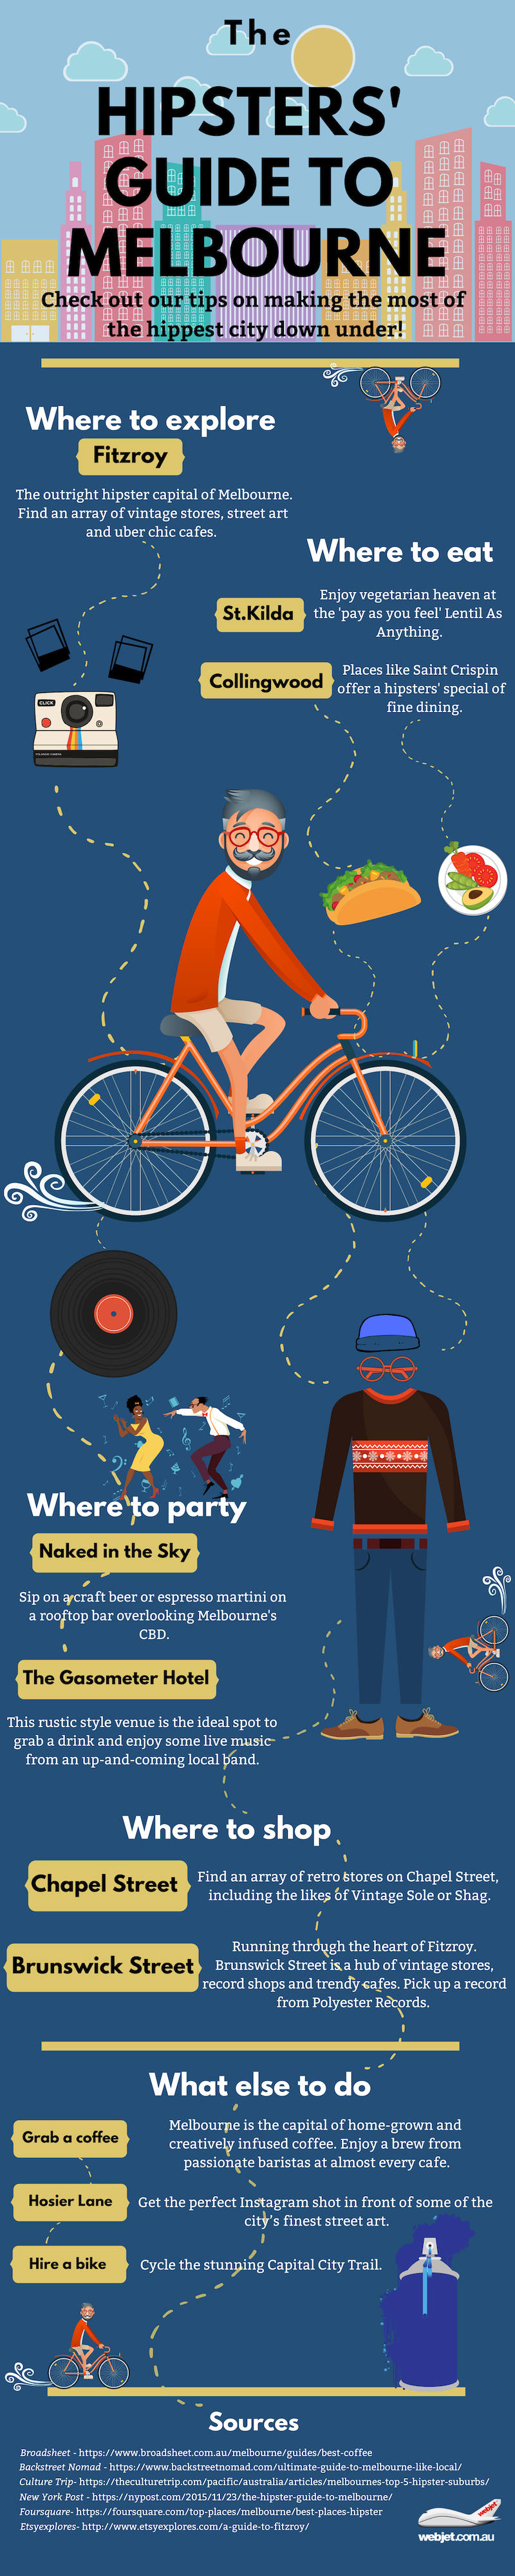 The-Hipsters-Guide-To-Melbourne-infographic-plaza